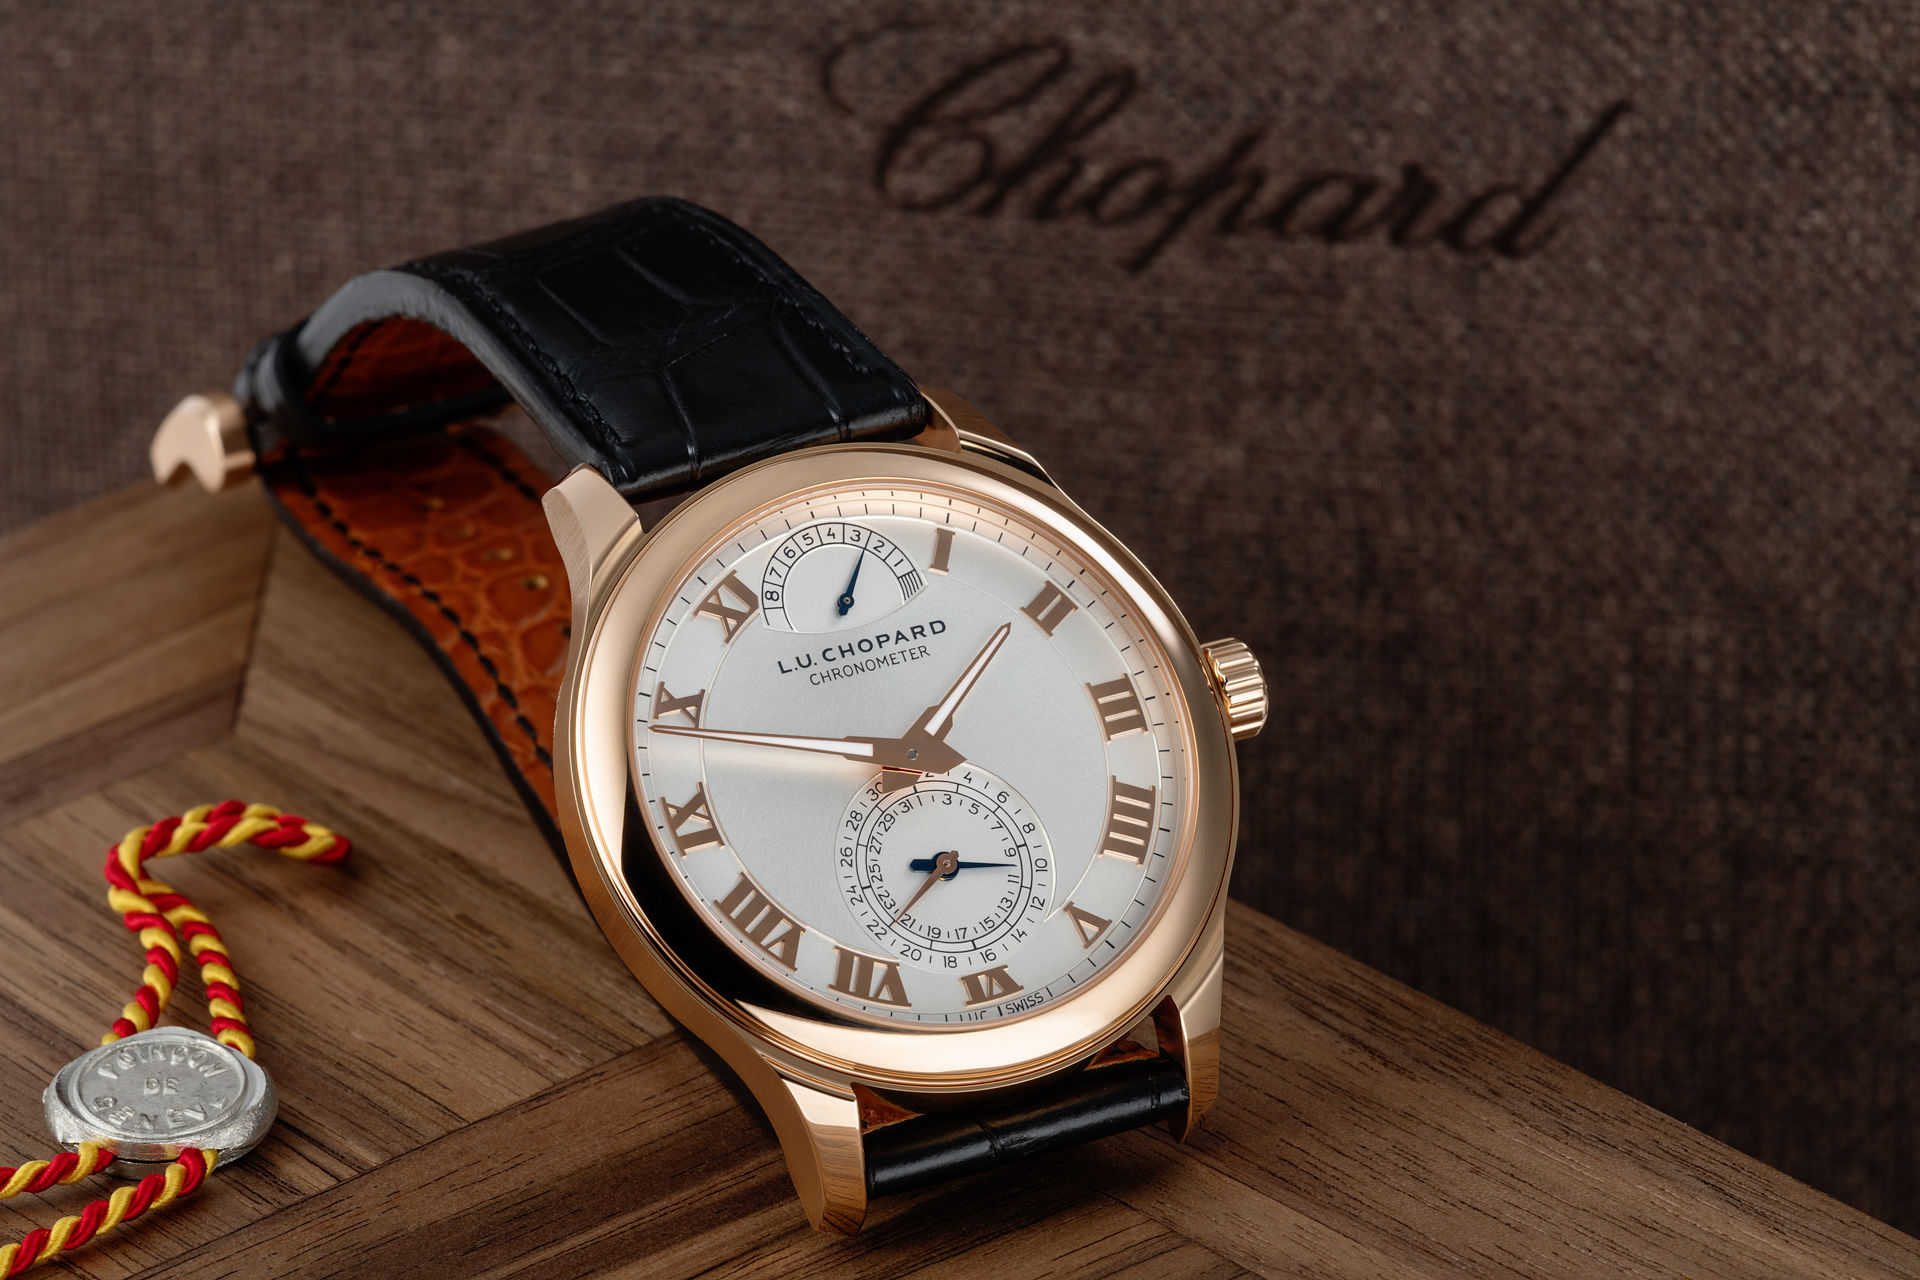 ref 161926-5001 | 'Brand New' 9 Day Power Reserve | Chopard L.U.C Quattro